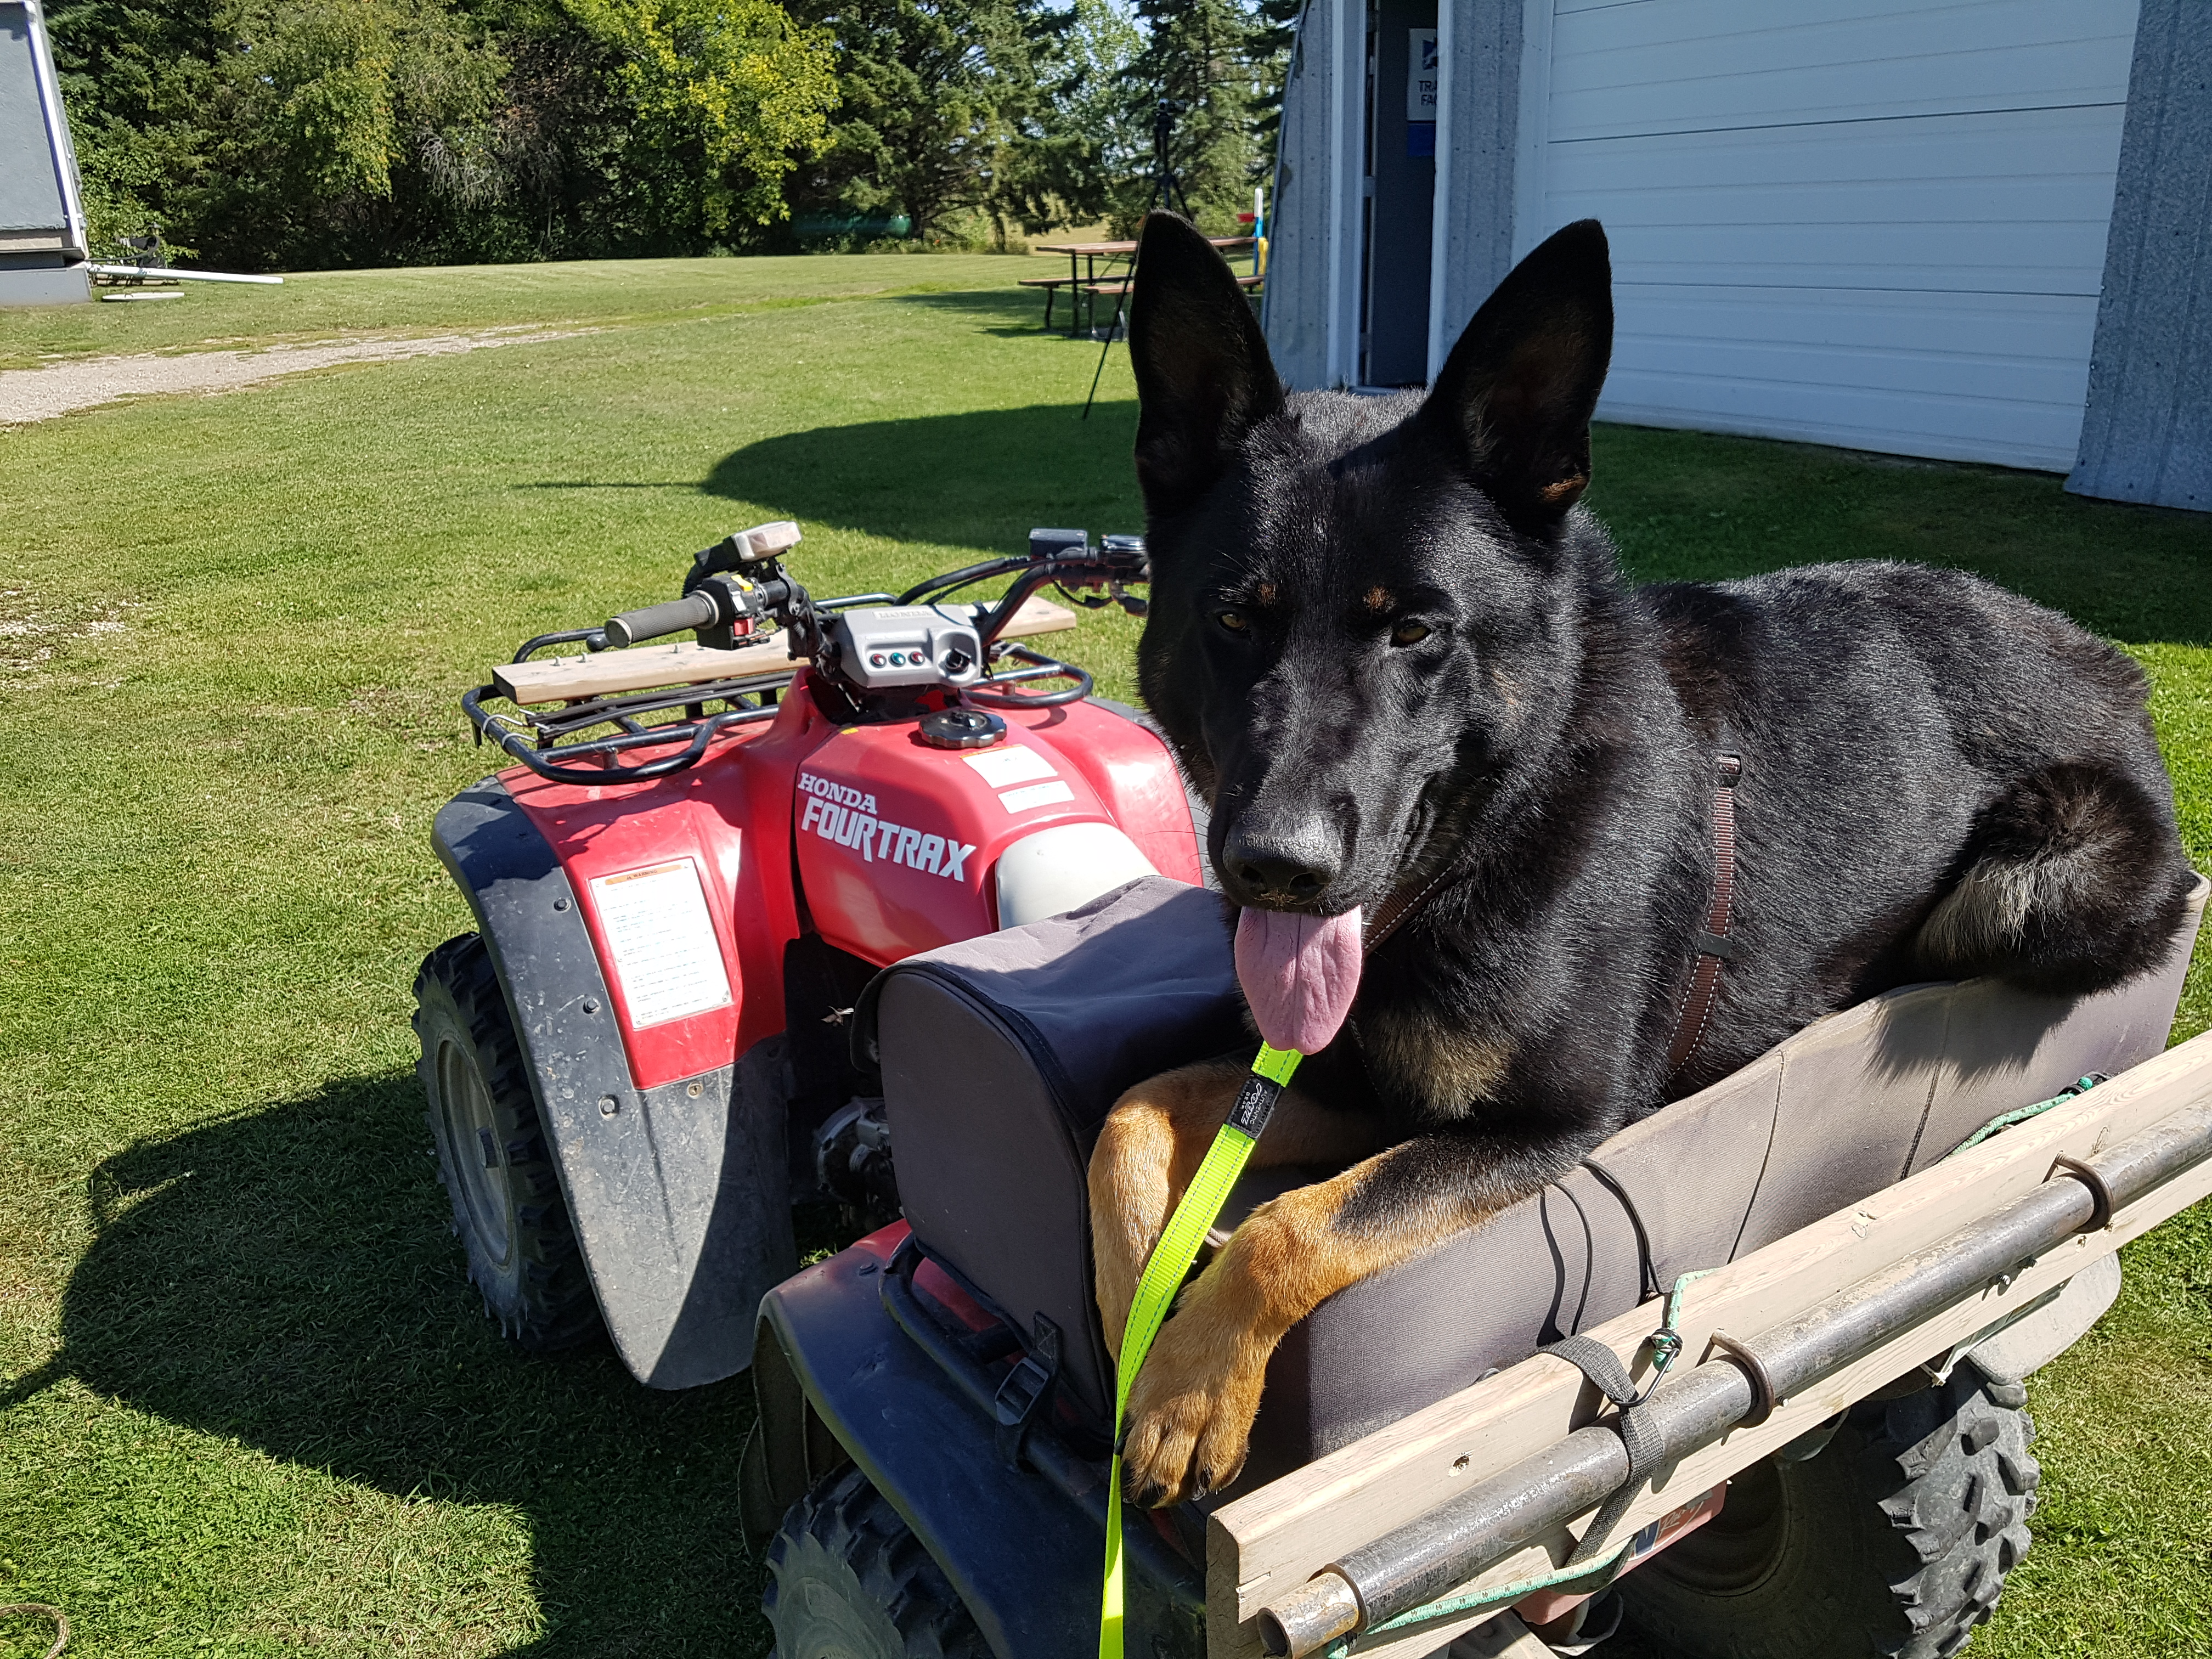 Dog riding a quad.